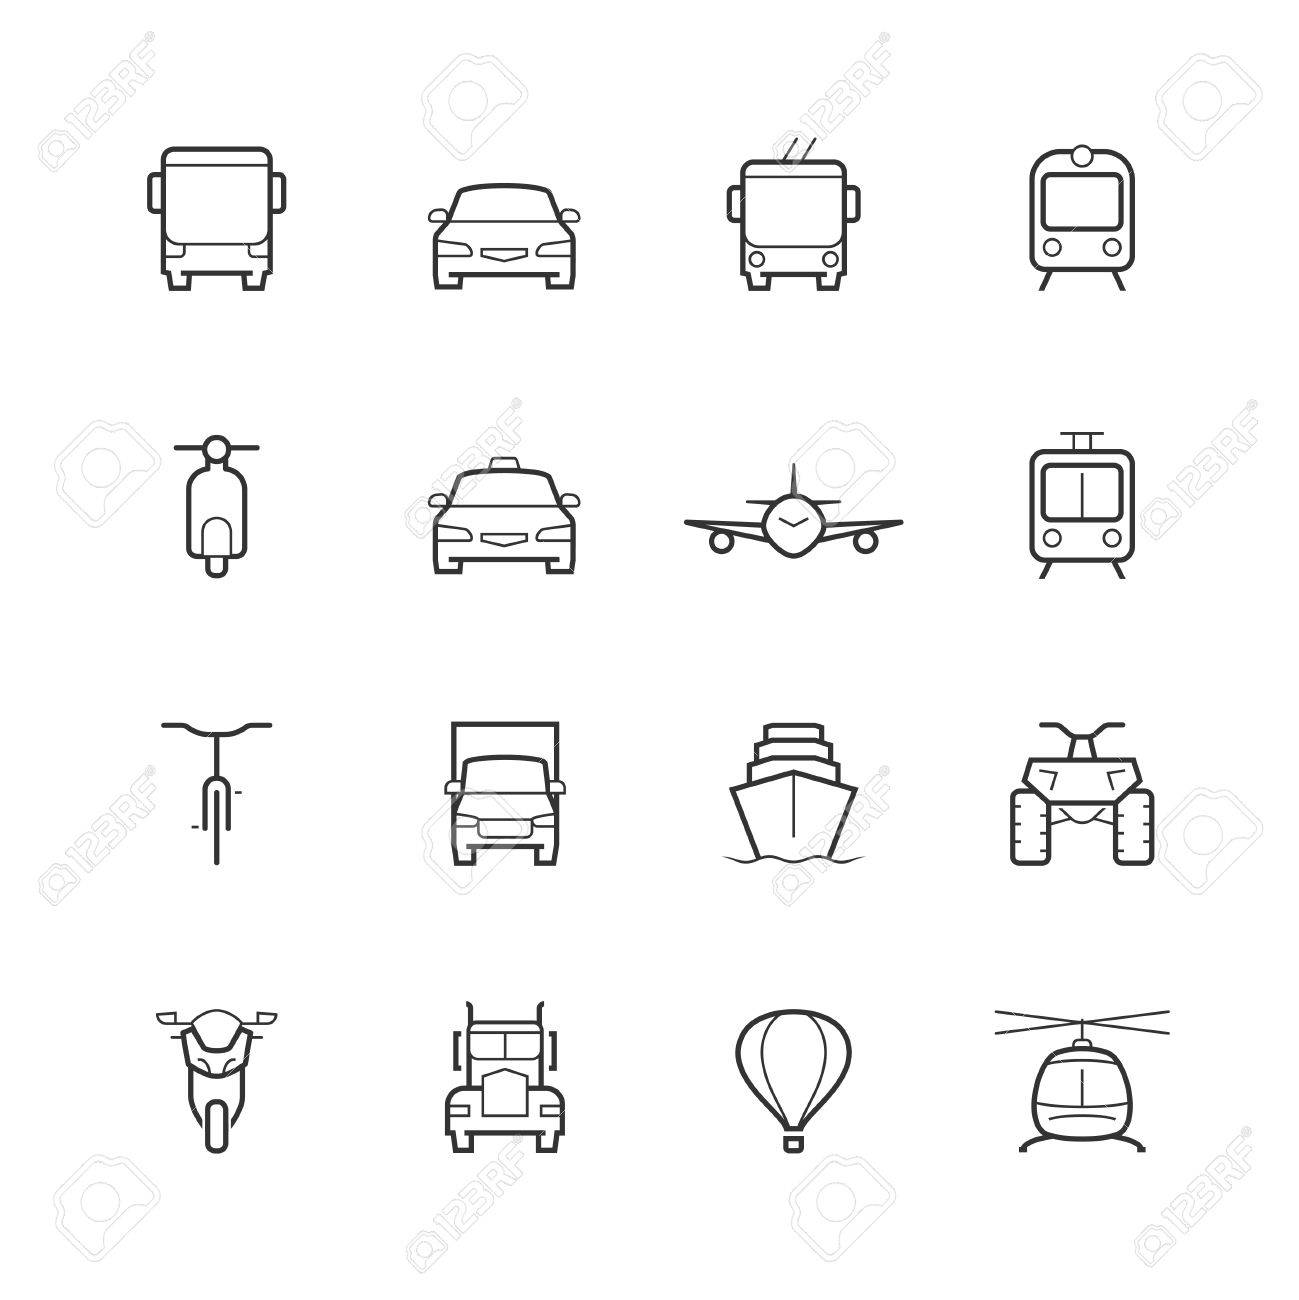 Transportation icons in thin line style, front view - 49649127